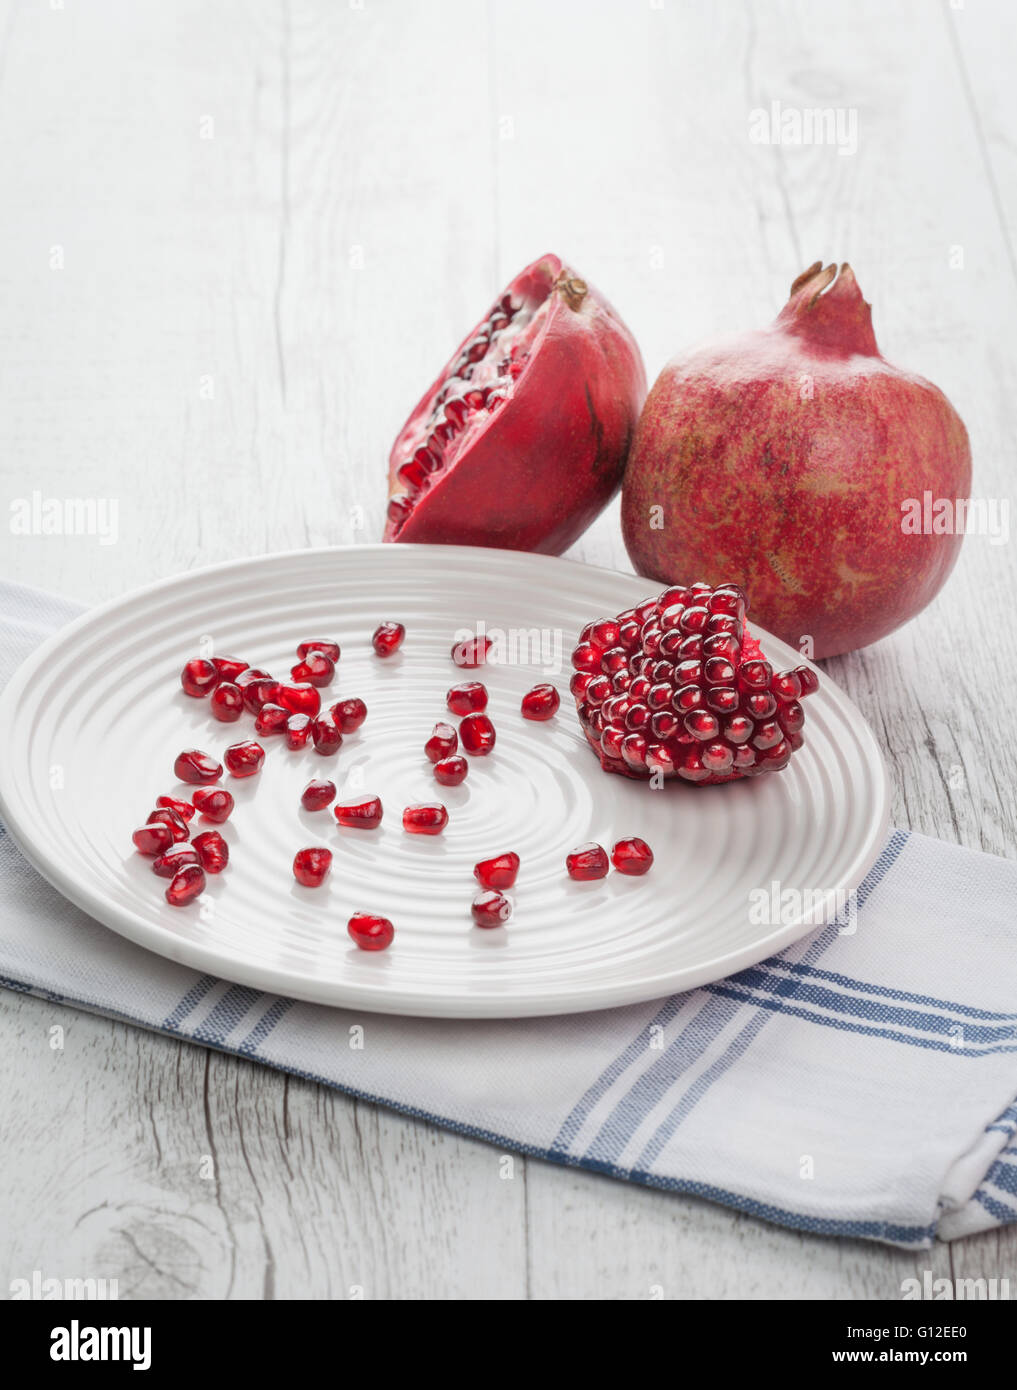 Pomegranate whole, half and seeds on white plate. Vertical image with back lighting. Shallow depth of field. - Stock Image